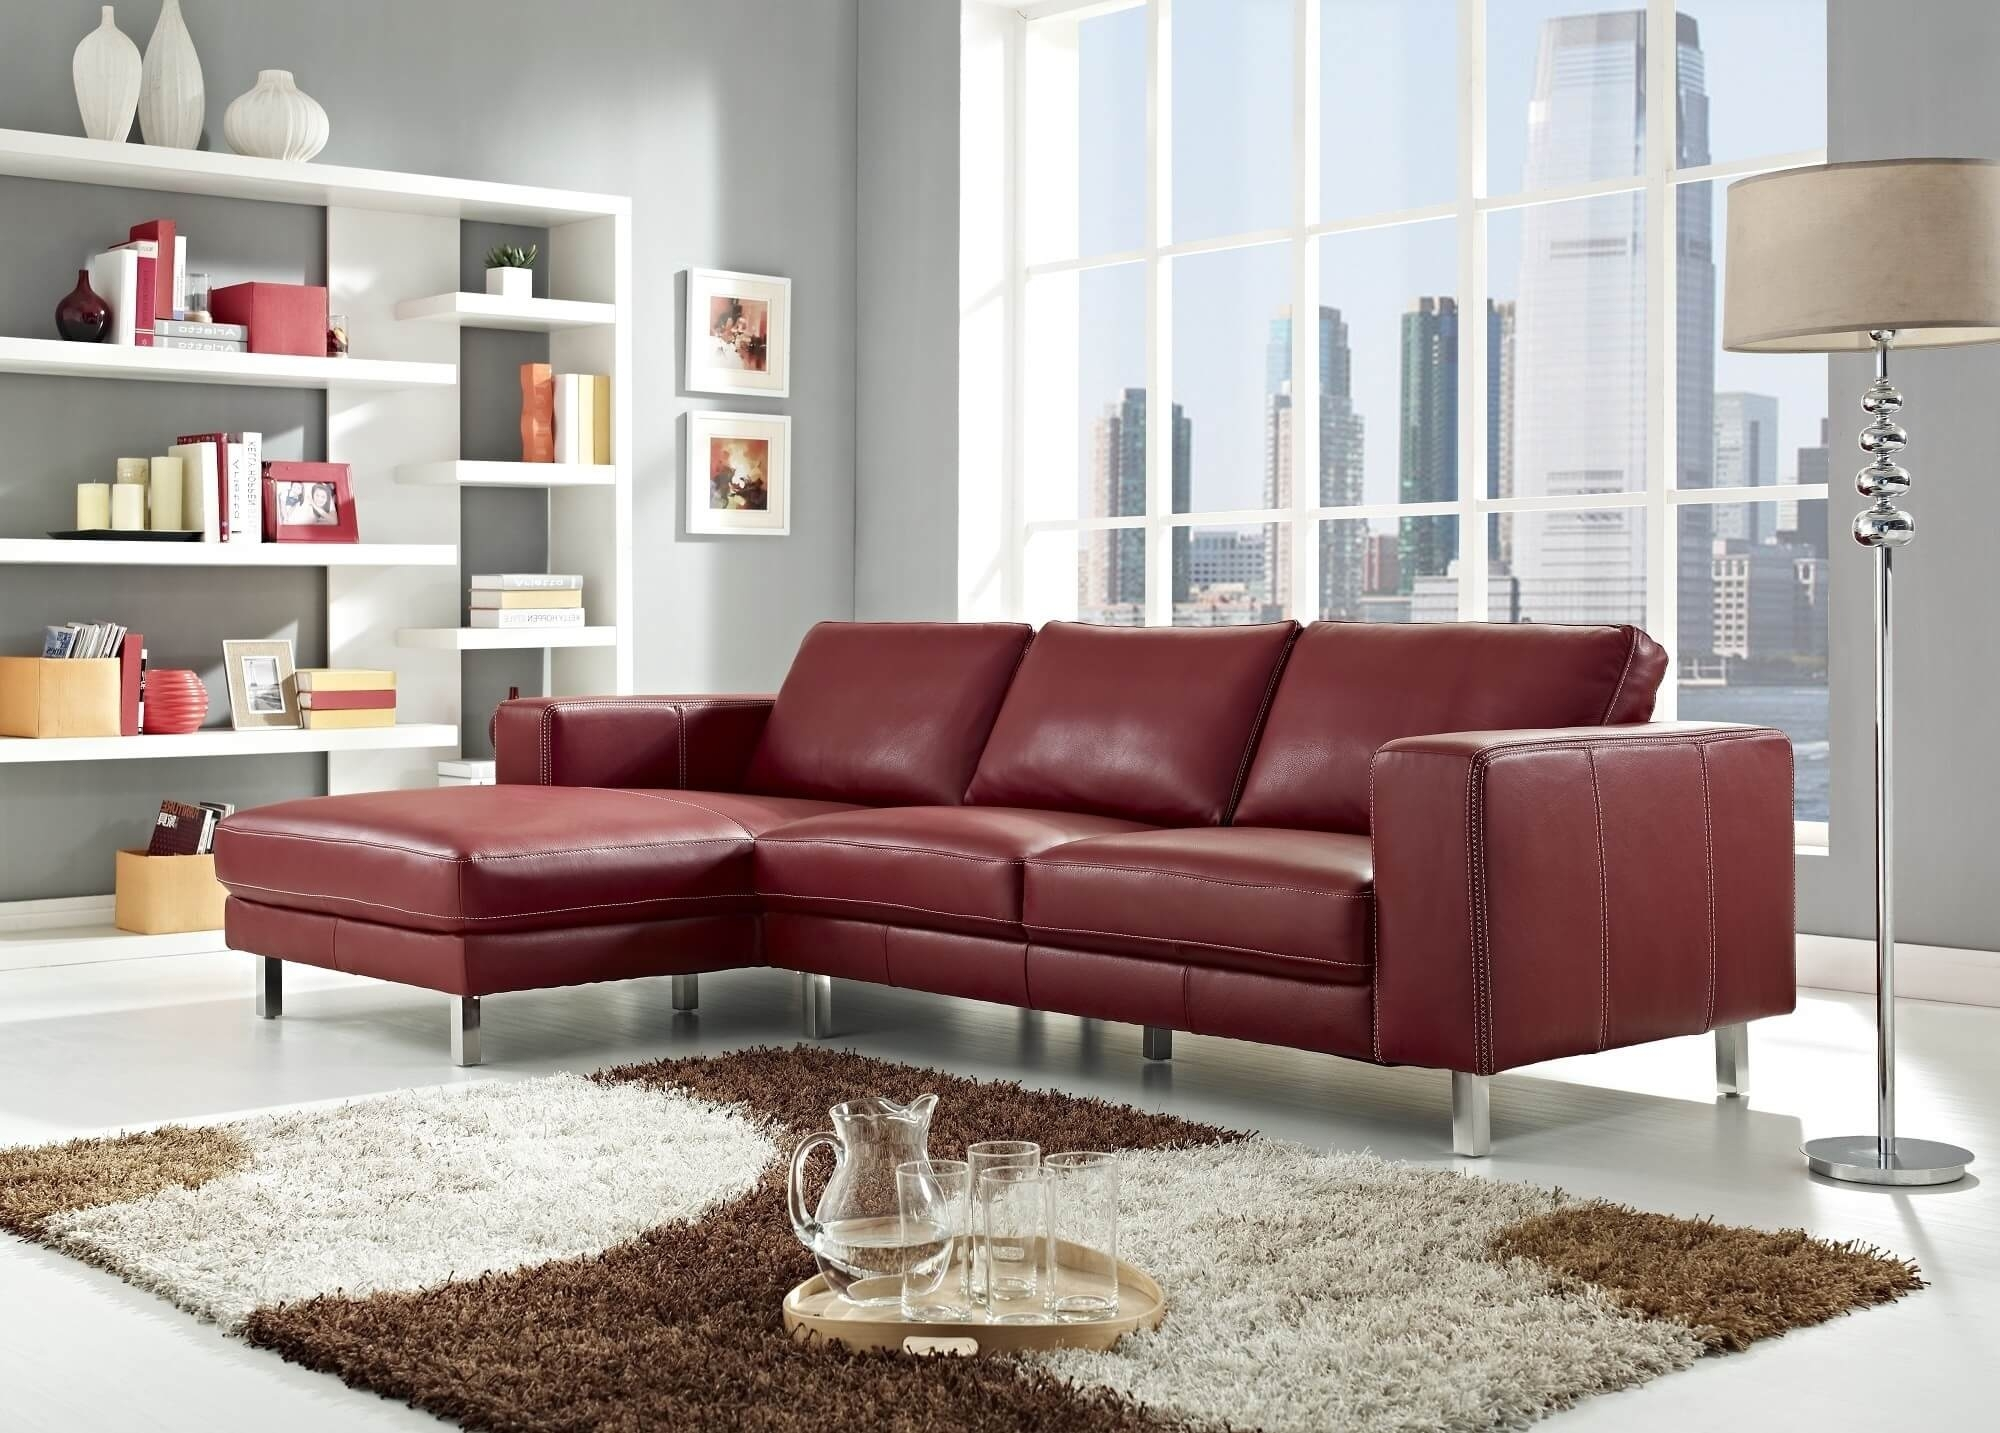 Stylish Modern Red Sectional Sofas inside Small Red Leather Sectional Sofas (Image 13 of 15)